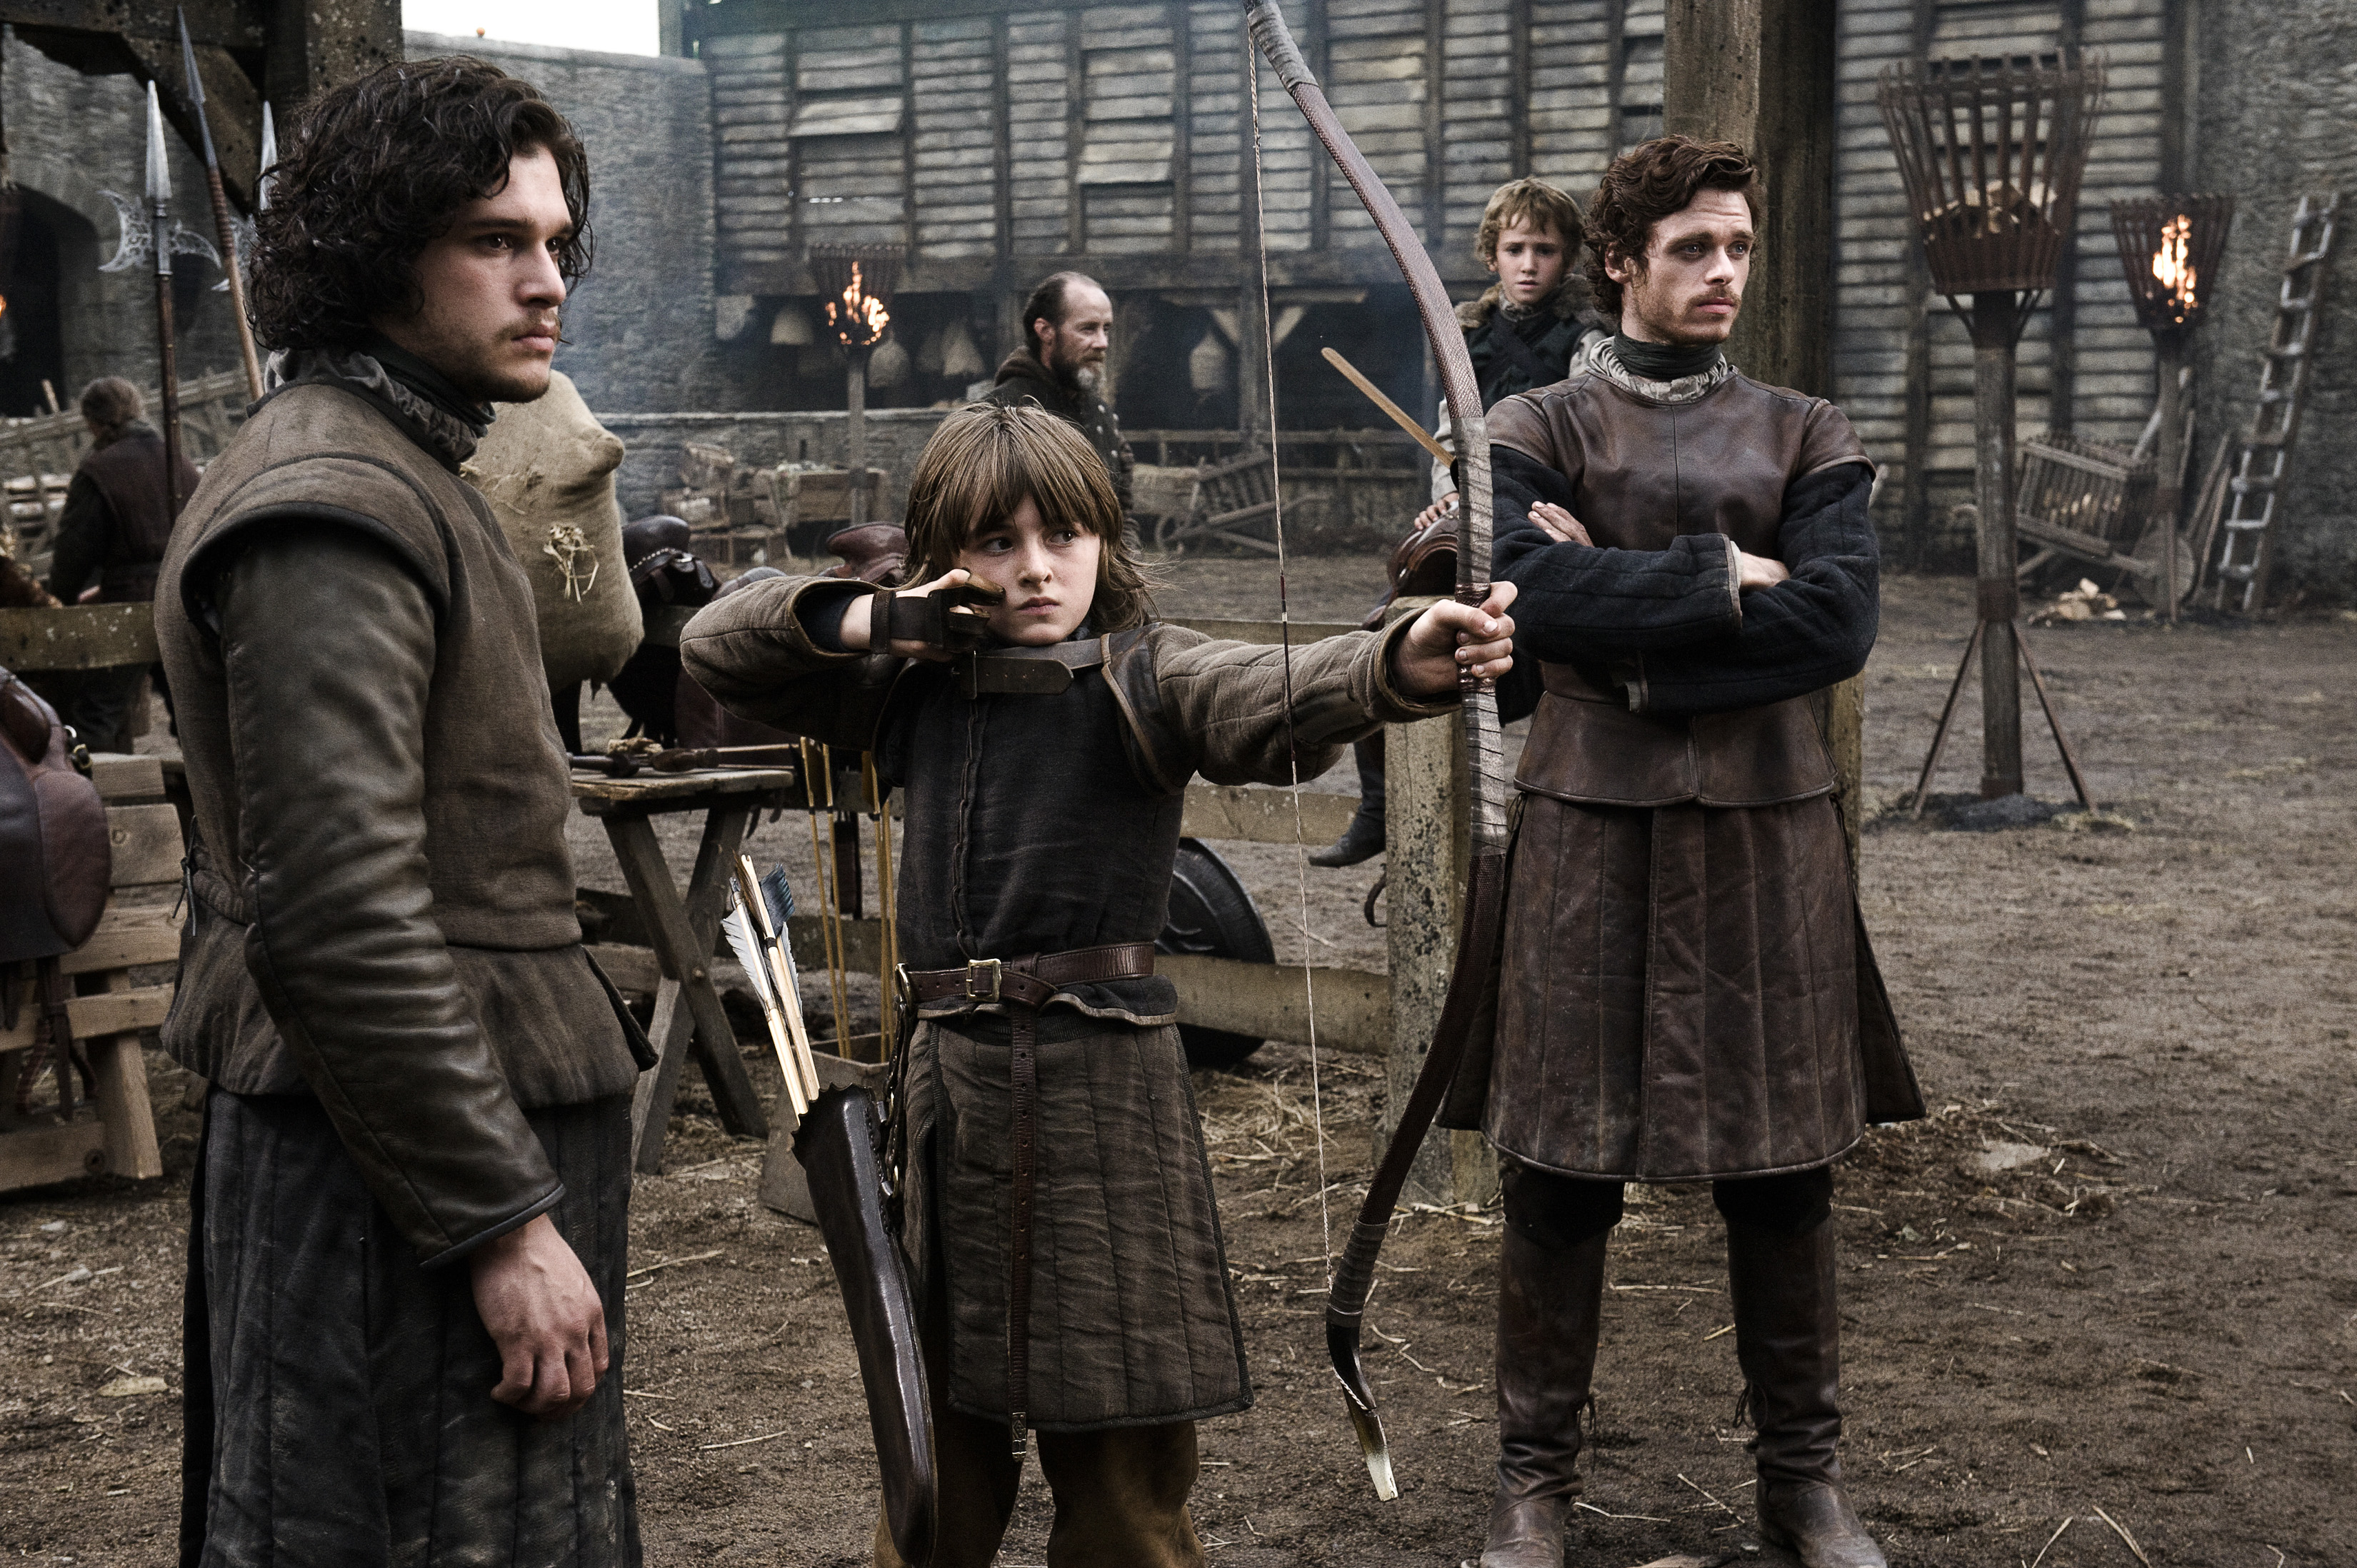 robb & bran stark with brother jon snow game of thrones' HD wallpaper